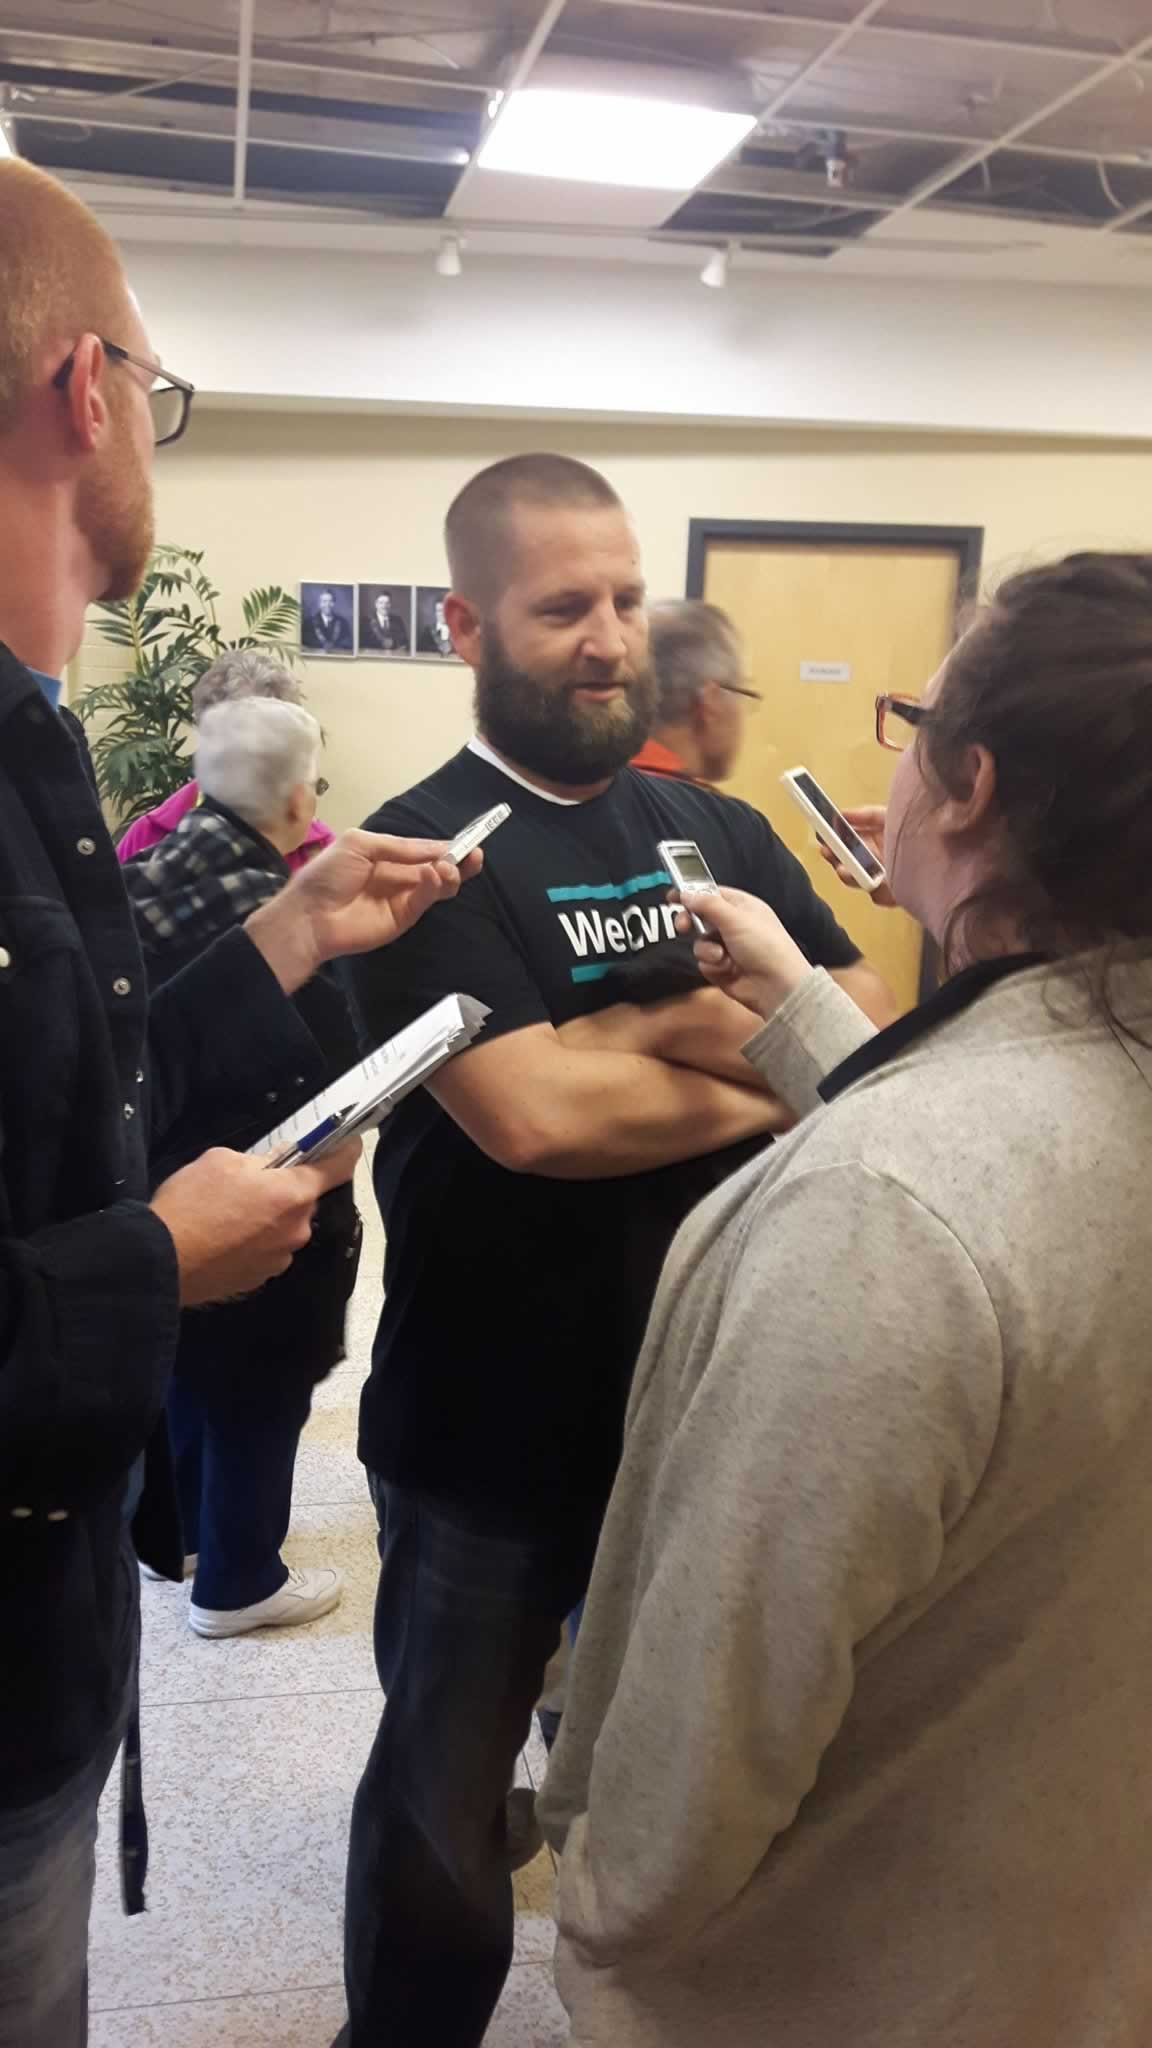 OPSEU member wearing We Own It shirt talks to reporters about Save Grey Gables campaign